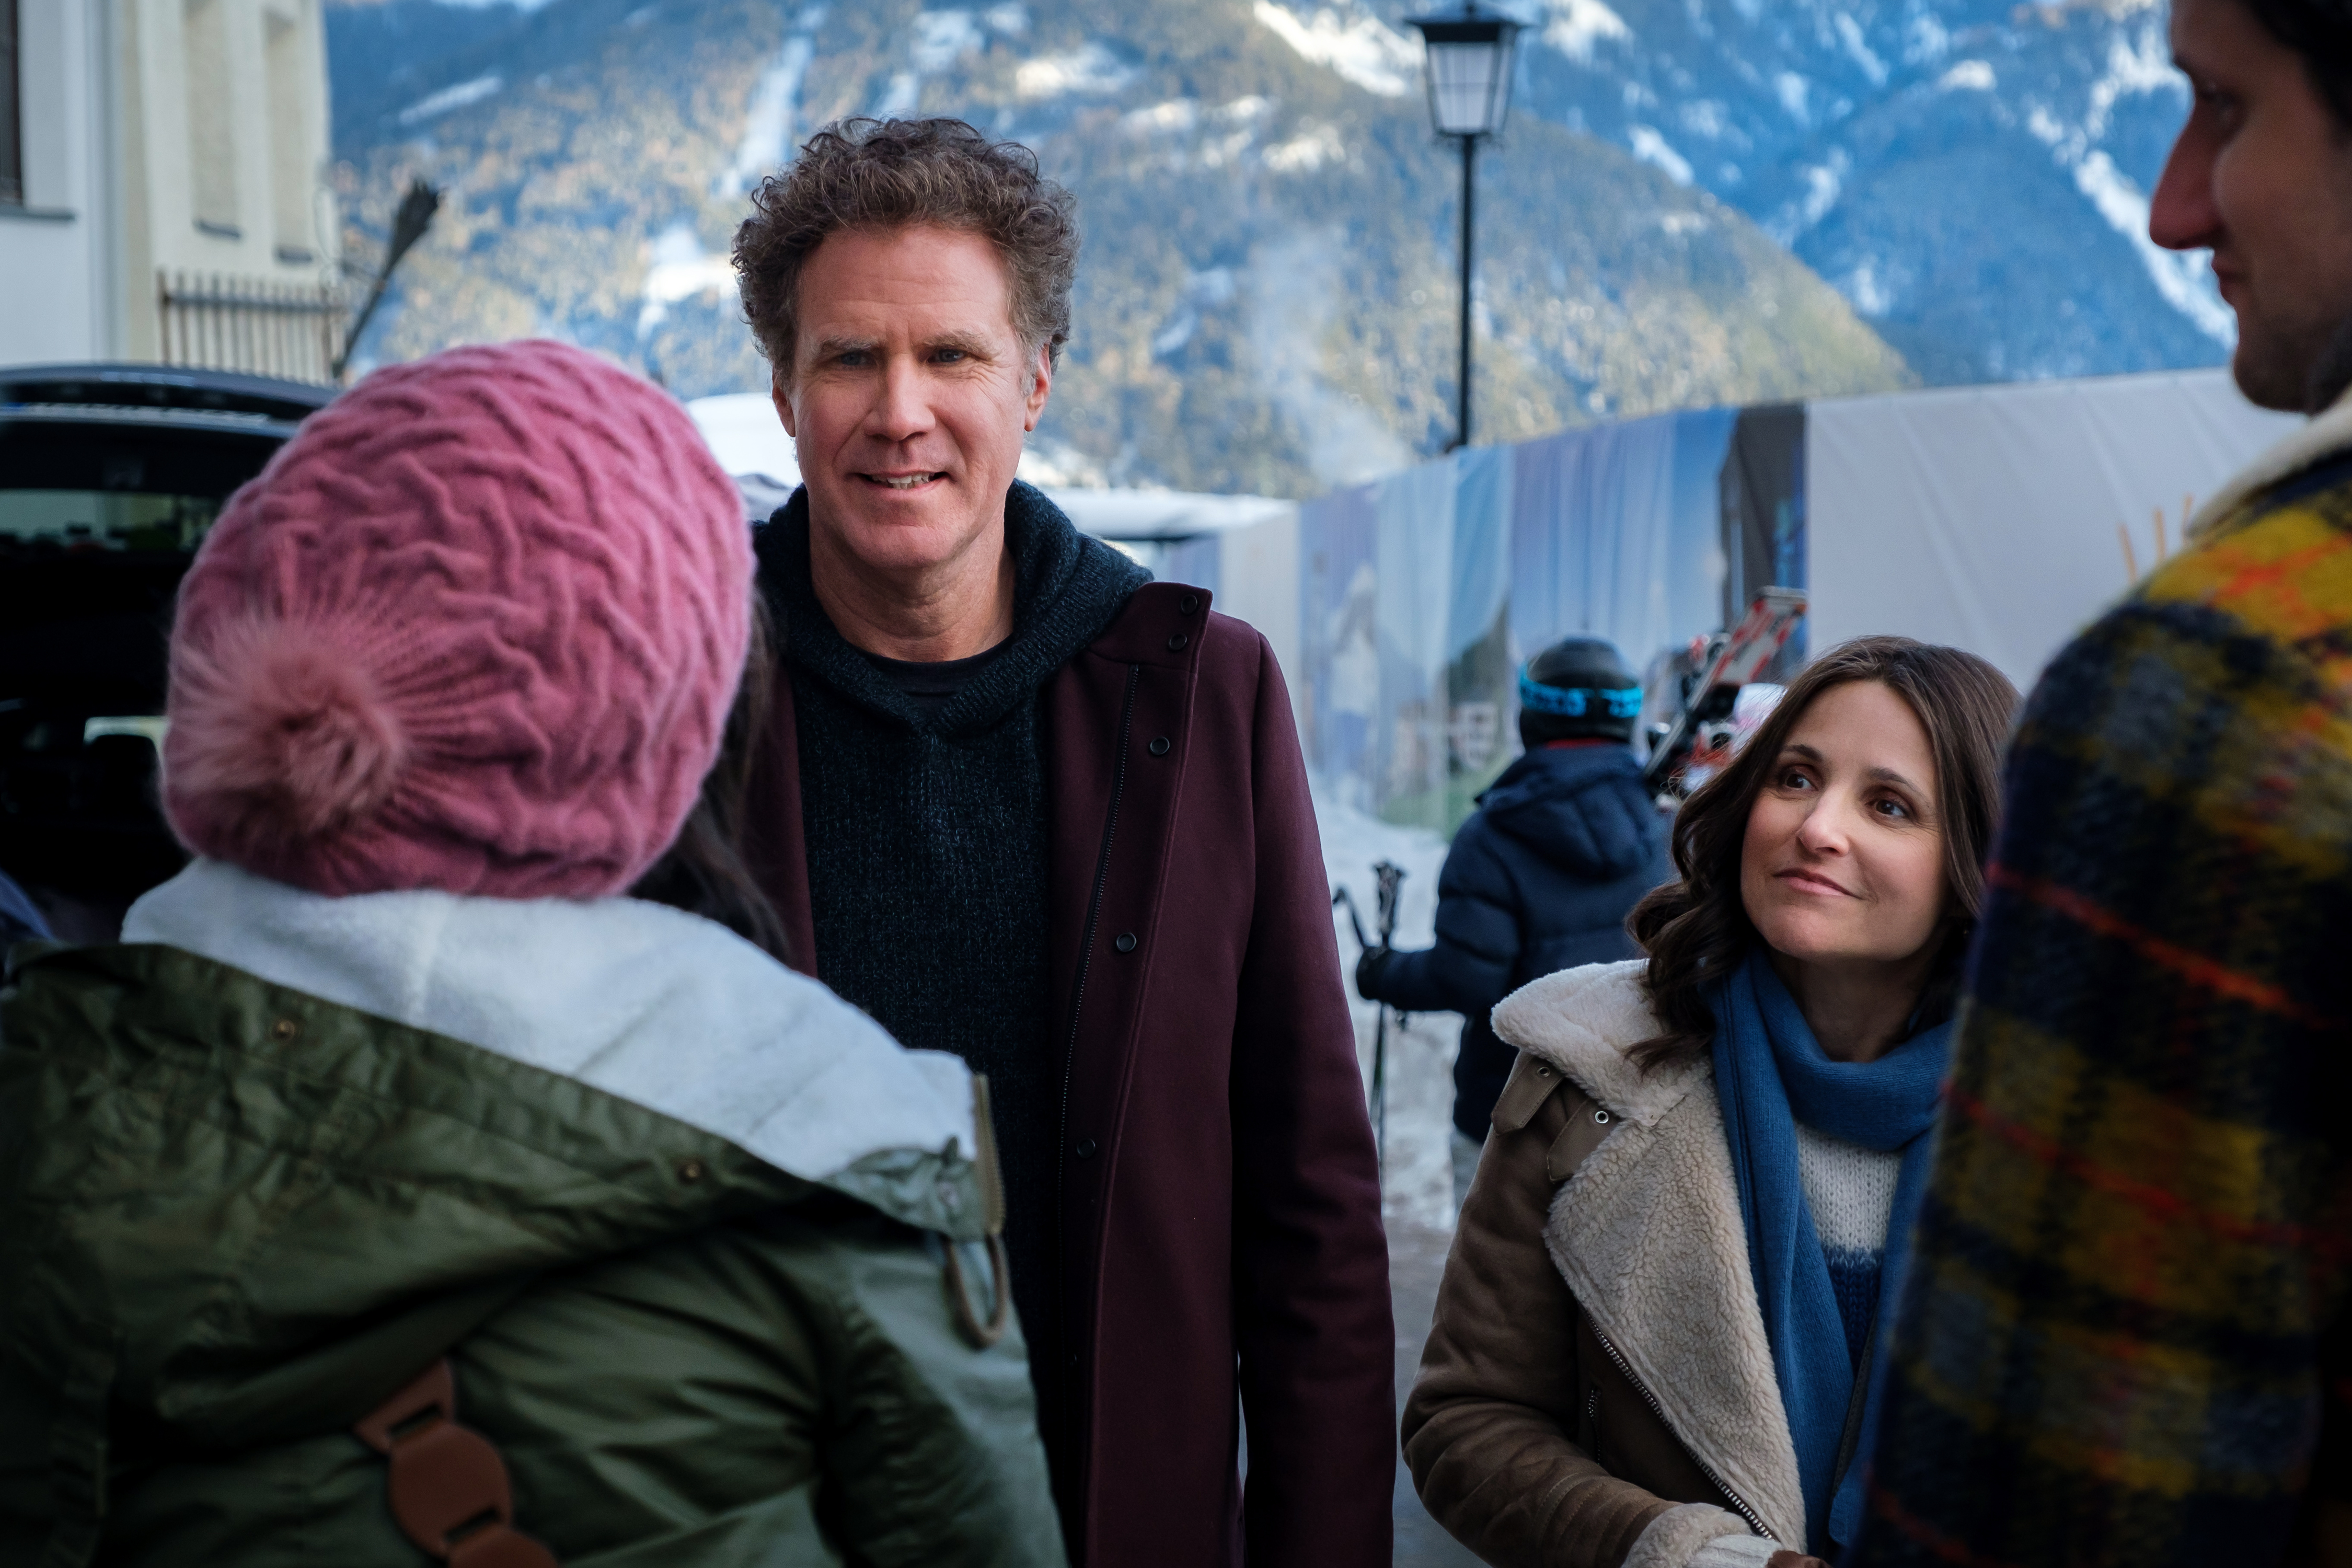 Julia Louis-Dreyfus and Will Ferrell's 'Downhill' Is Worse Than Stale Popcorn